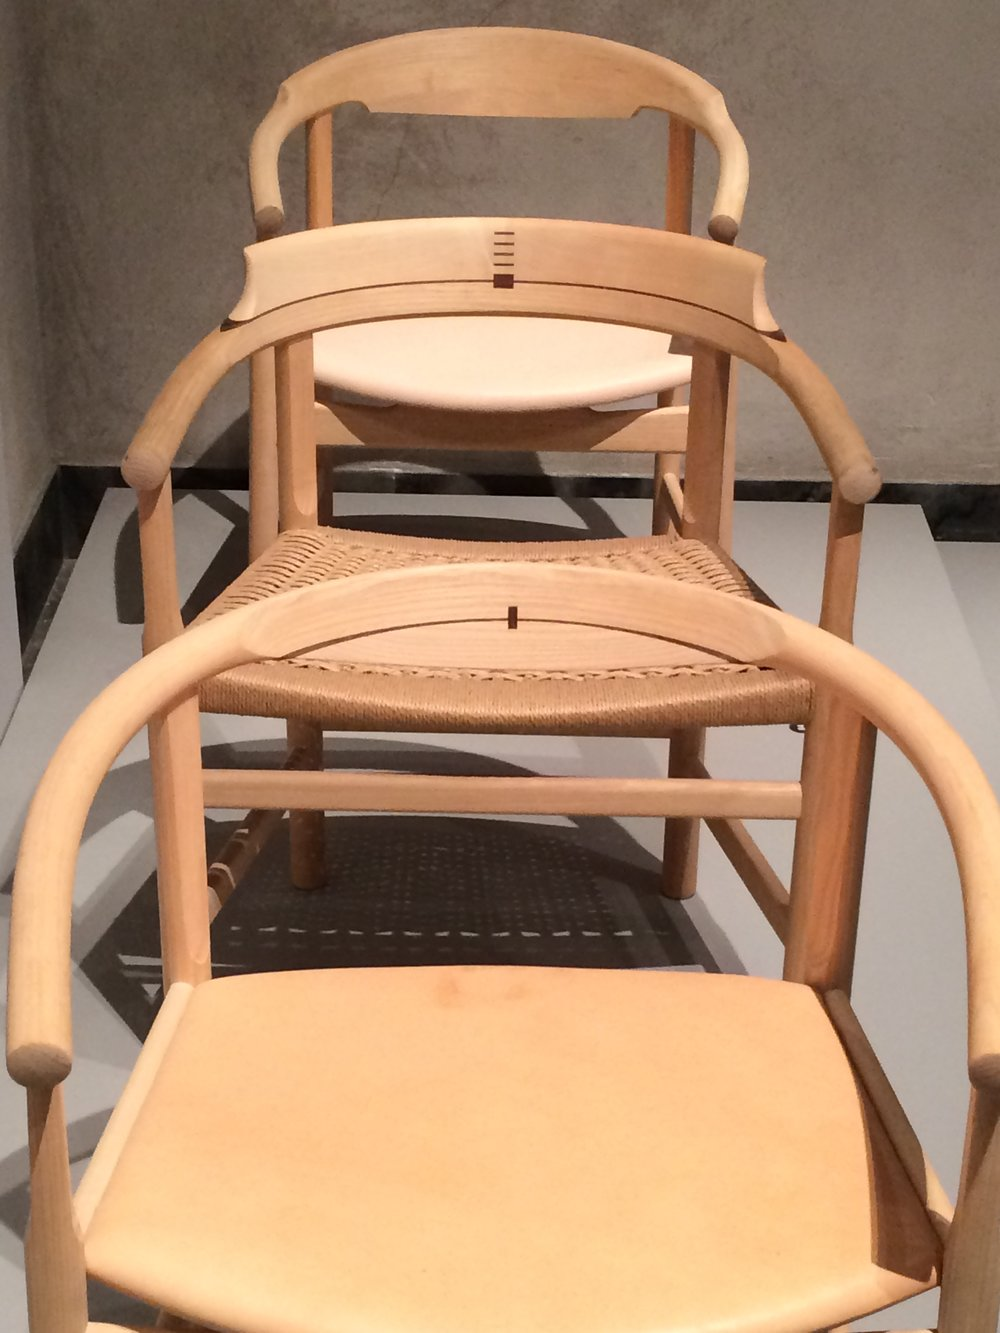 Wegner chairs.jpg